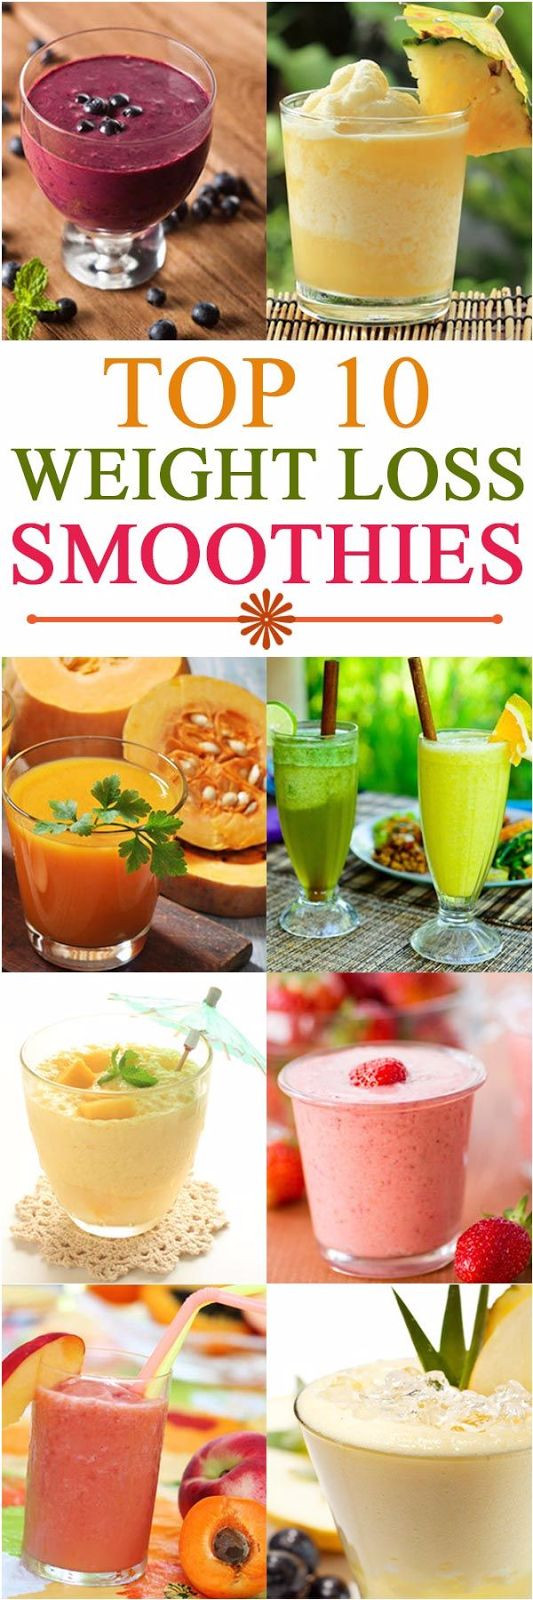 Weight Loss Breakfast Smoothies  21 Weight Loss Smoothies With Recipes And Benefits